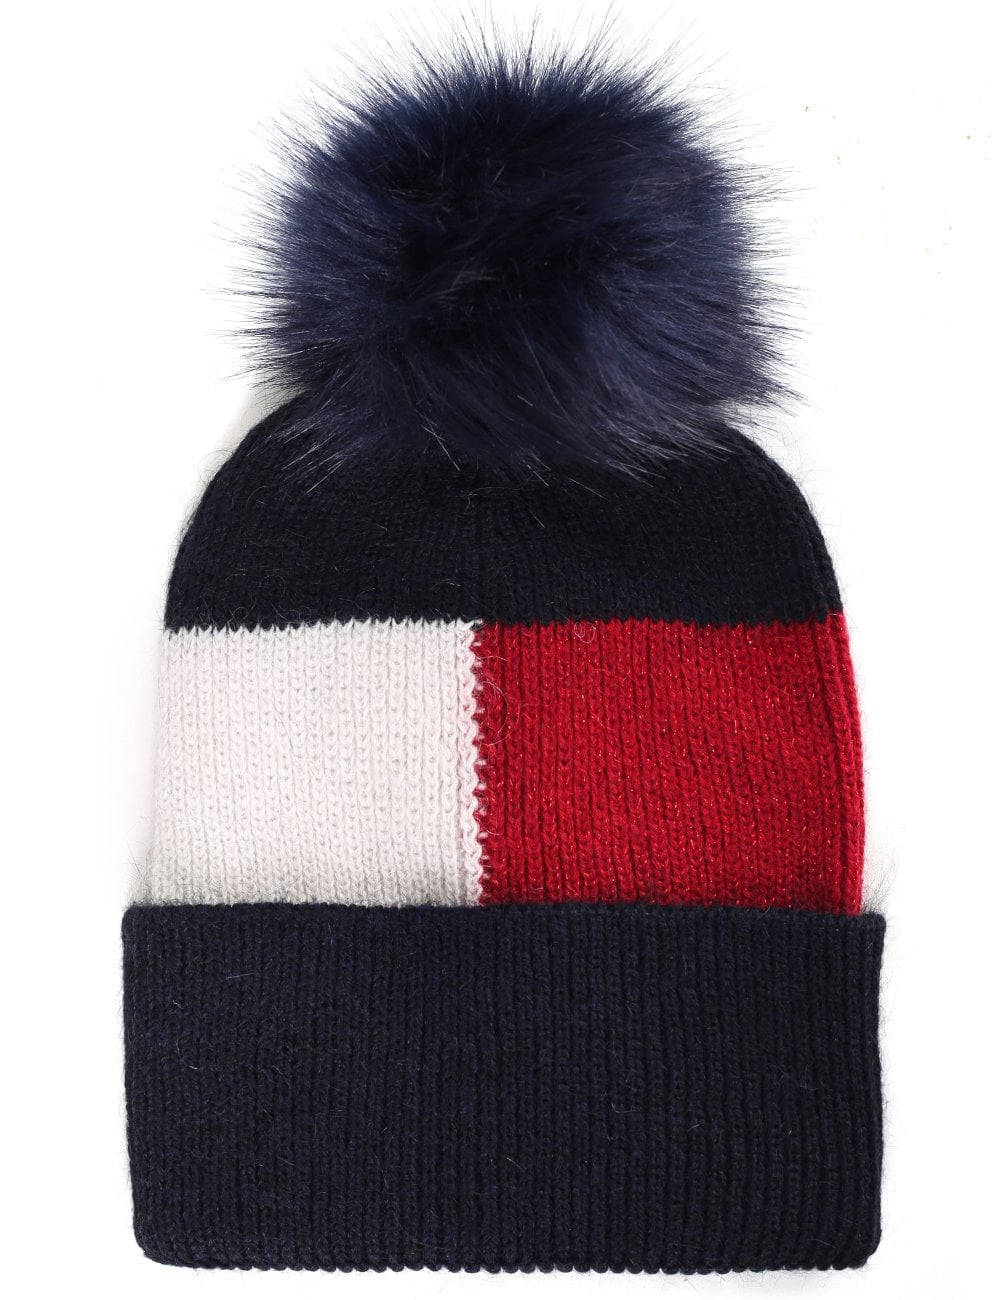 Tommy Hilfiger Women s Luxury Colorblock Beanie Corporate 352f6a03dc1